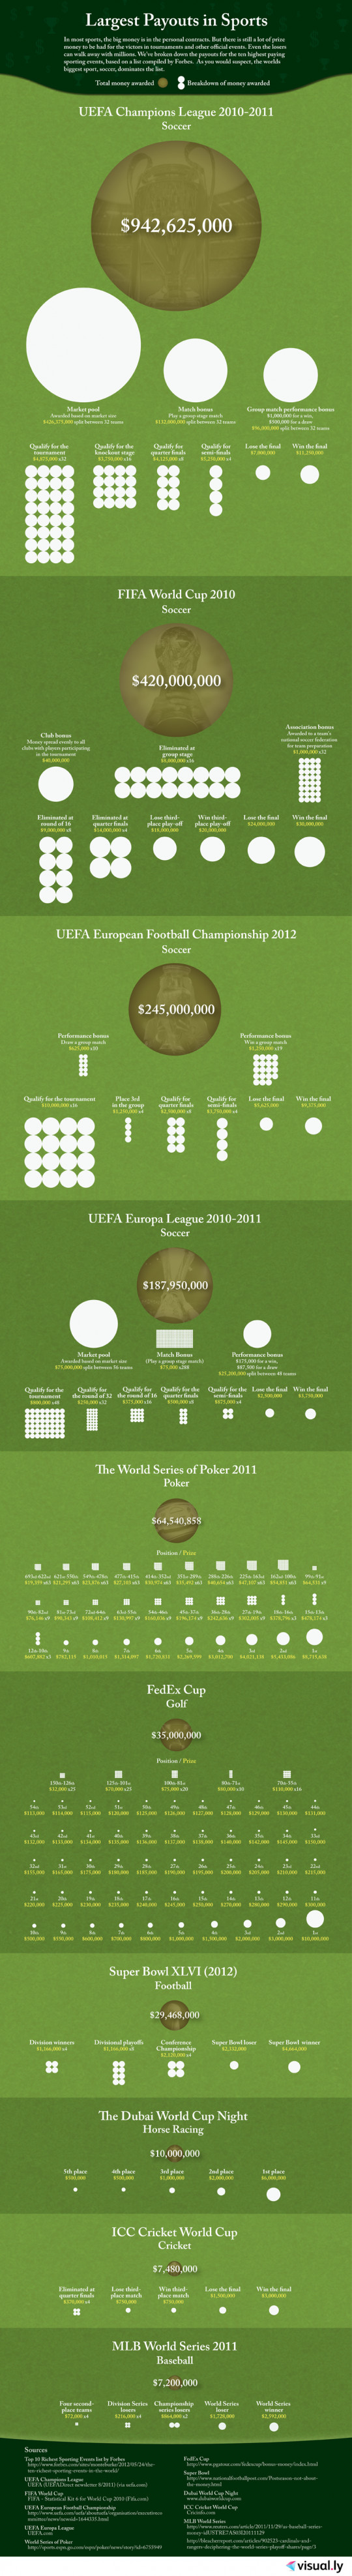 Largest Payouts in Sports